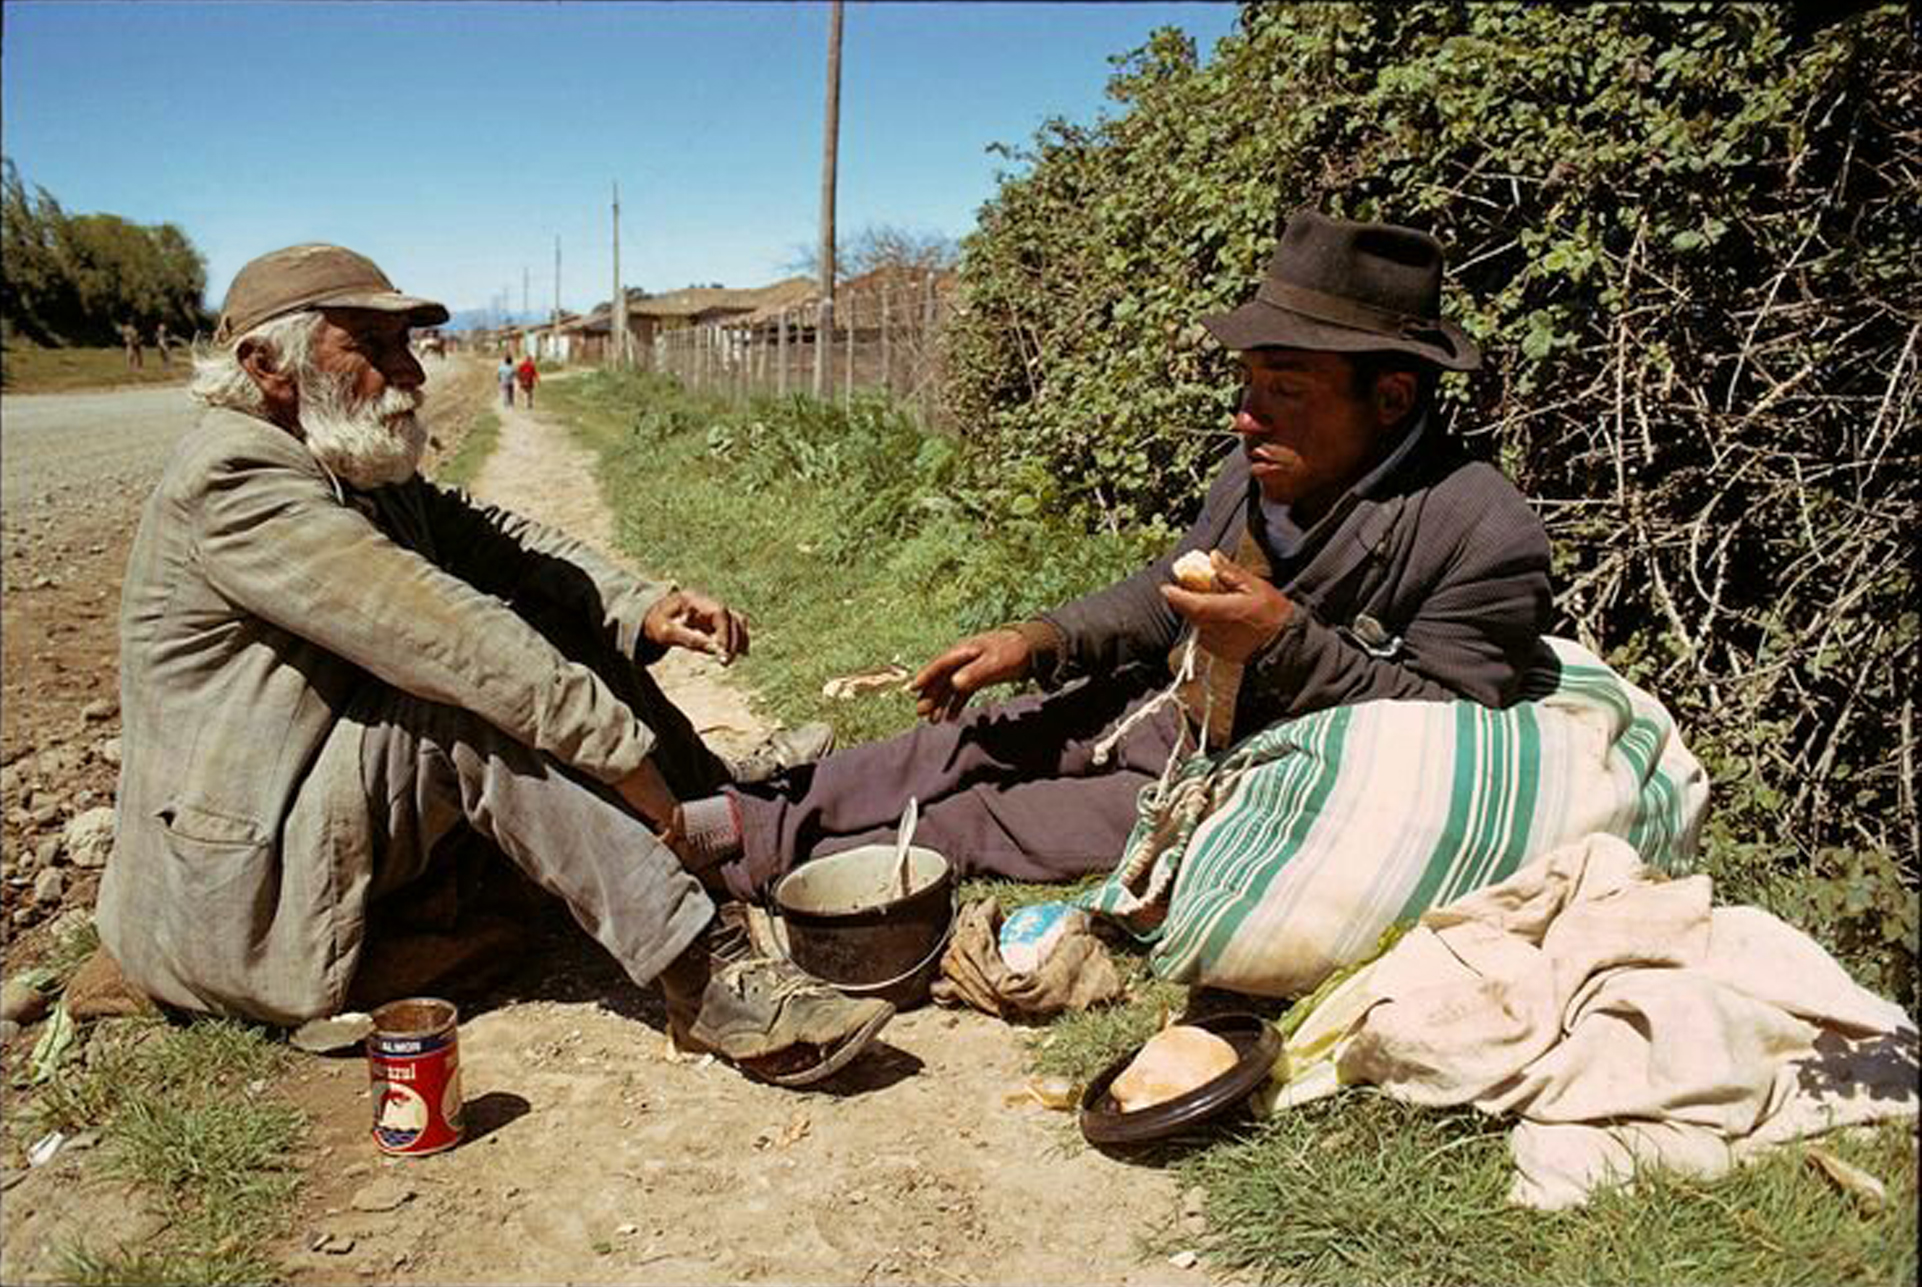 Enterreno - Fotos históricas de chile - fotos antiguas de Chile - Campesinos afuerinos almorzando, 1971